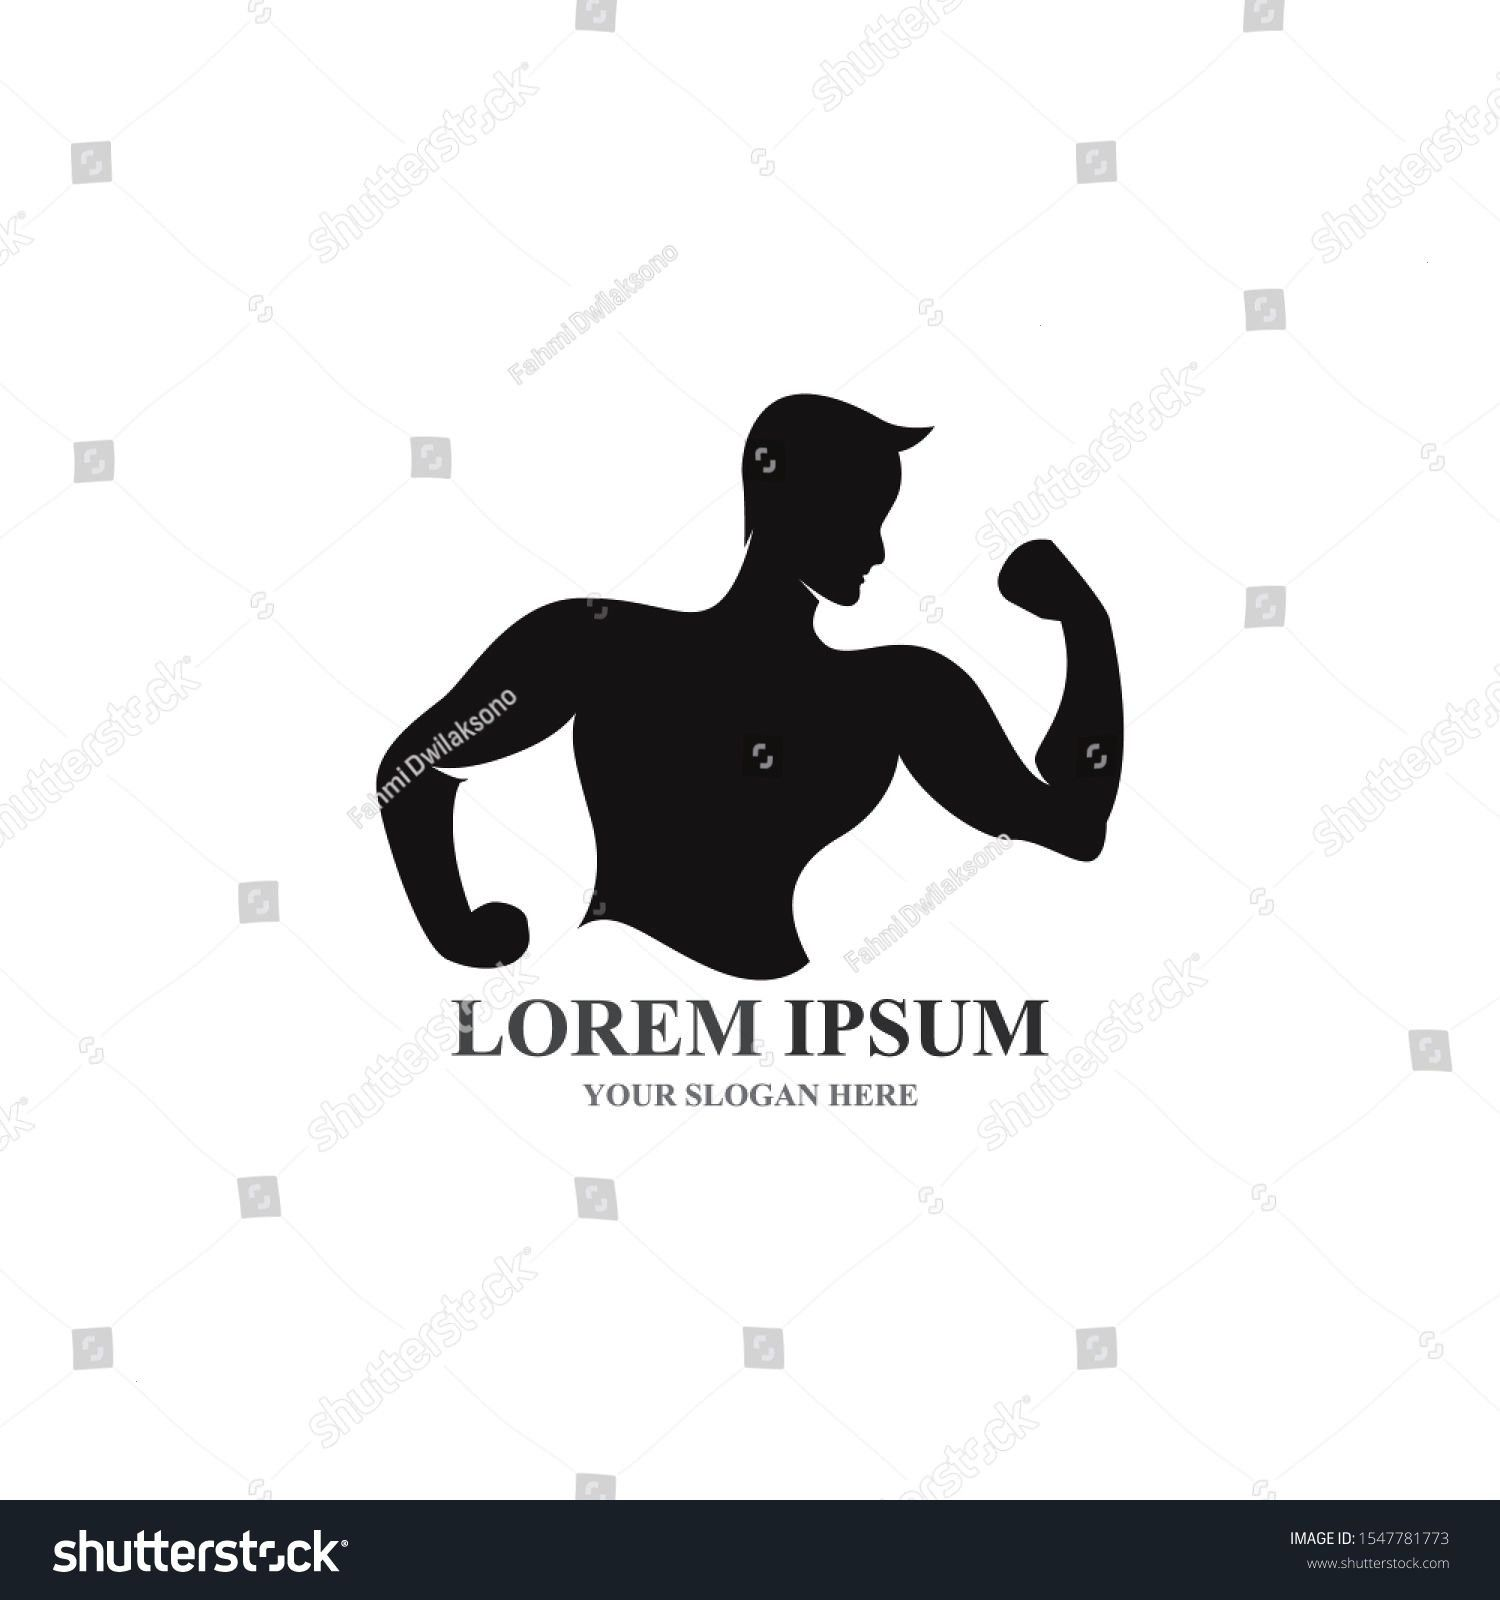 #sportlabeliconsvector #sponsored #fitness #vector #object #design #icons #sport #label #badge #logo...